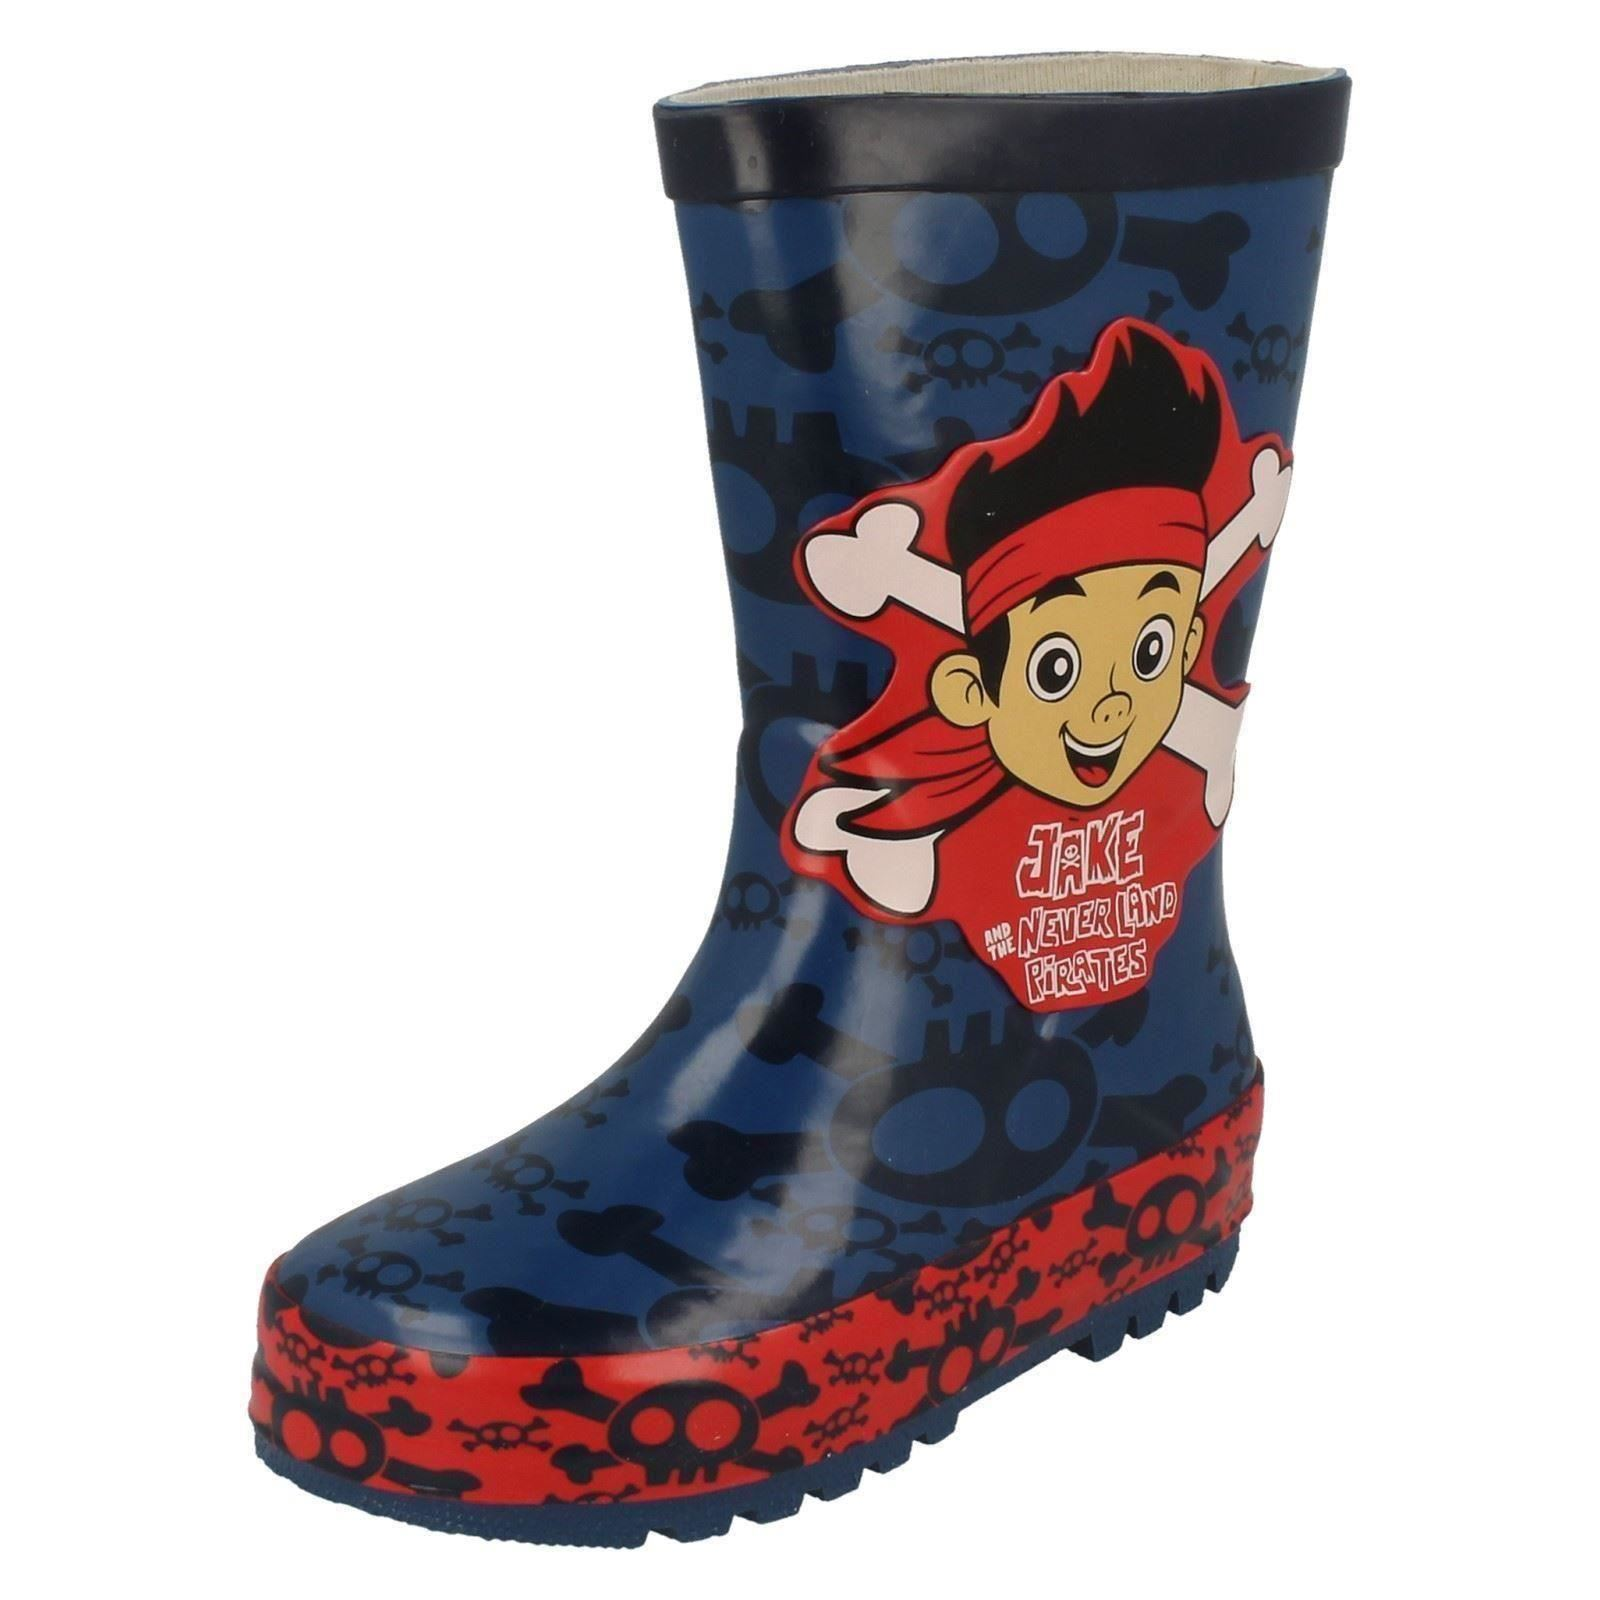 Chicos Disney Crossbone Wellingtons * Jake Y Los Piratas Del Neverland *